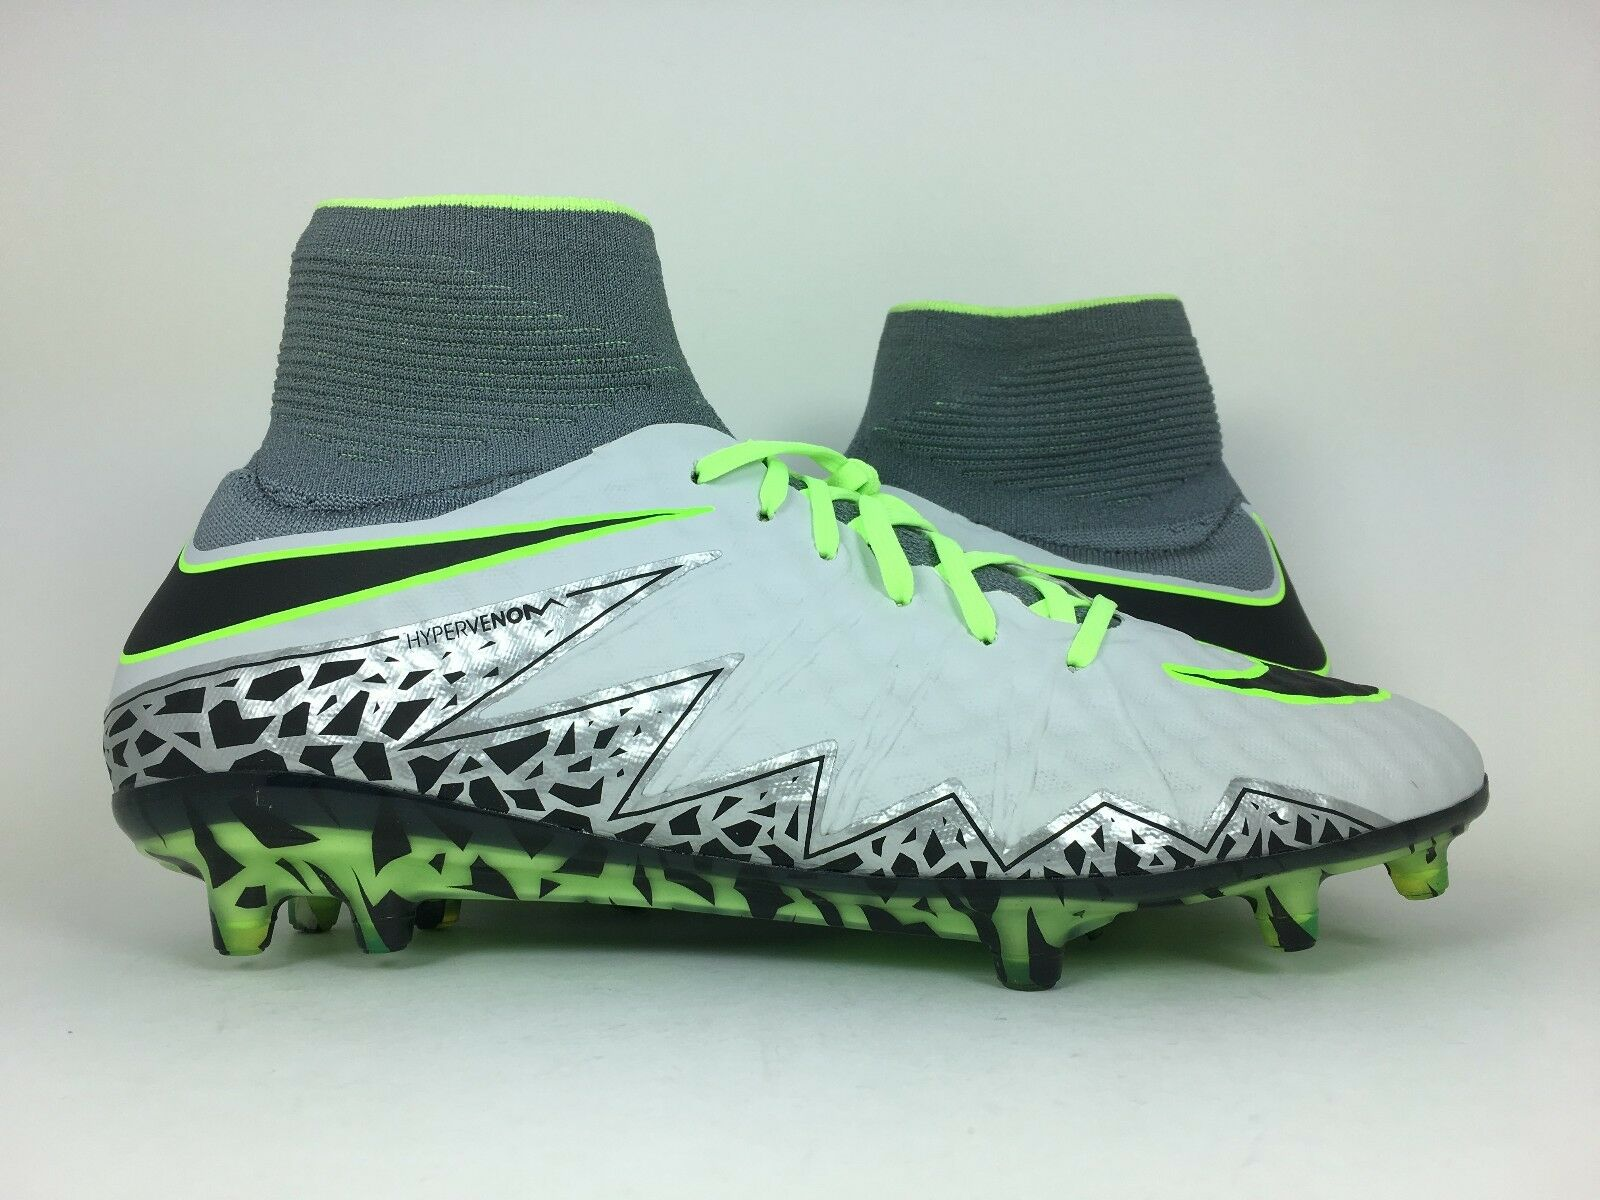 Nike Cleat Hypervenom Phantom II 2 FG Soccer Cleat Nike Wolf Grey Volt (747213-003) sz 7 19da41